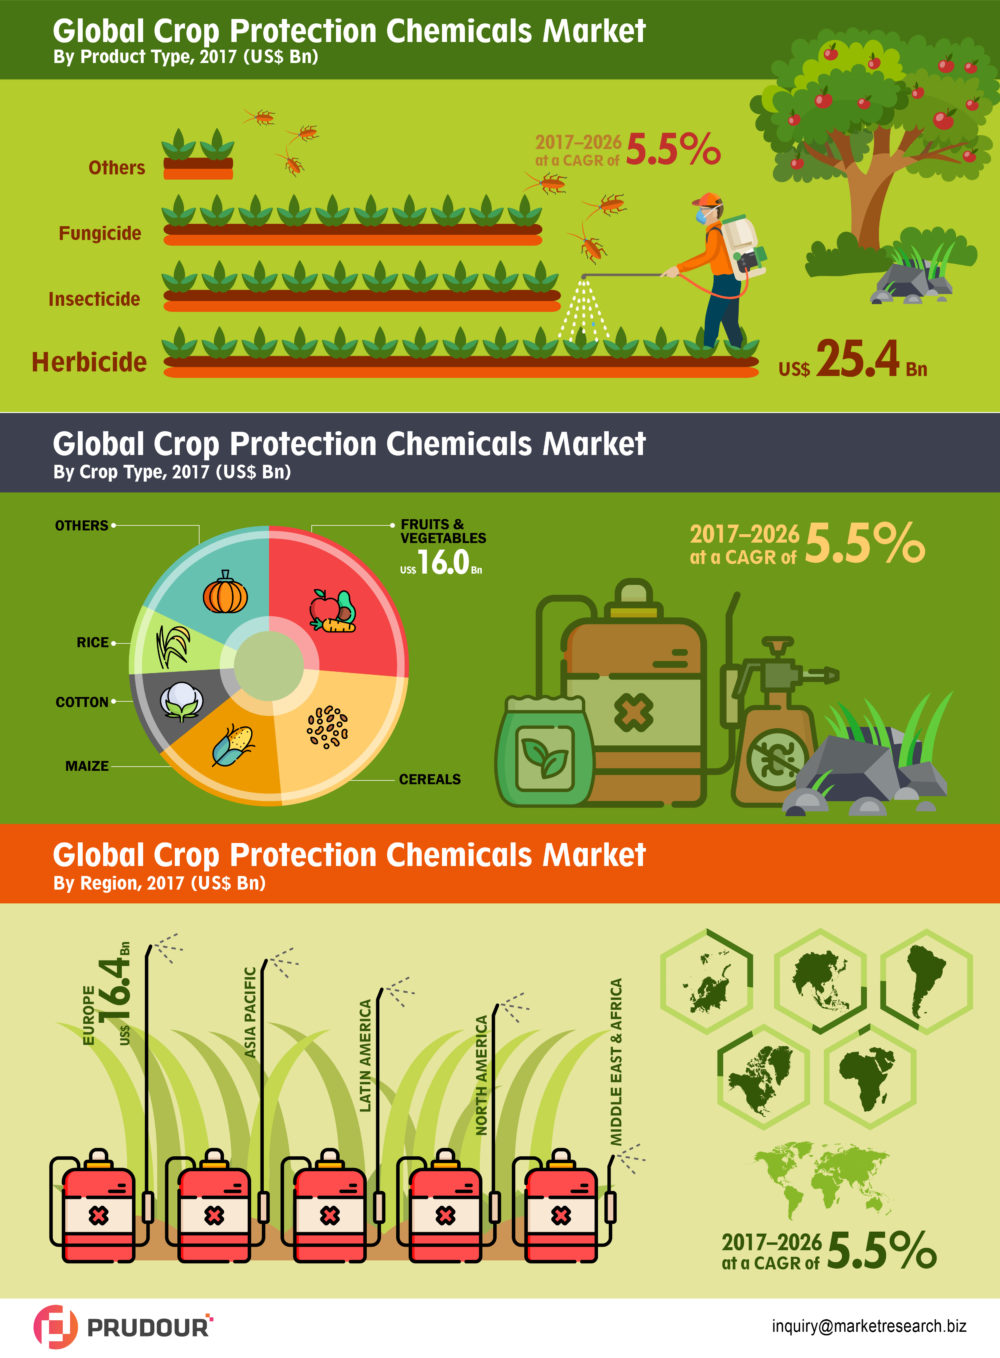 CAGR Of 5.5%: Global Crop Protection Chemicals Market about to reach CAGR of 5.5% between 2017 to 2026